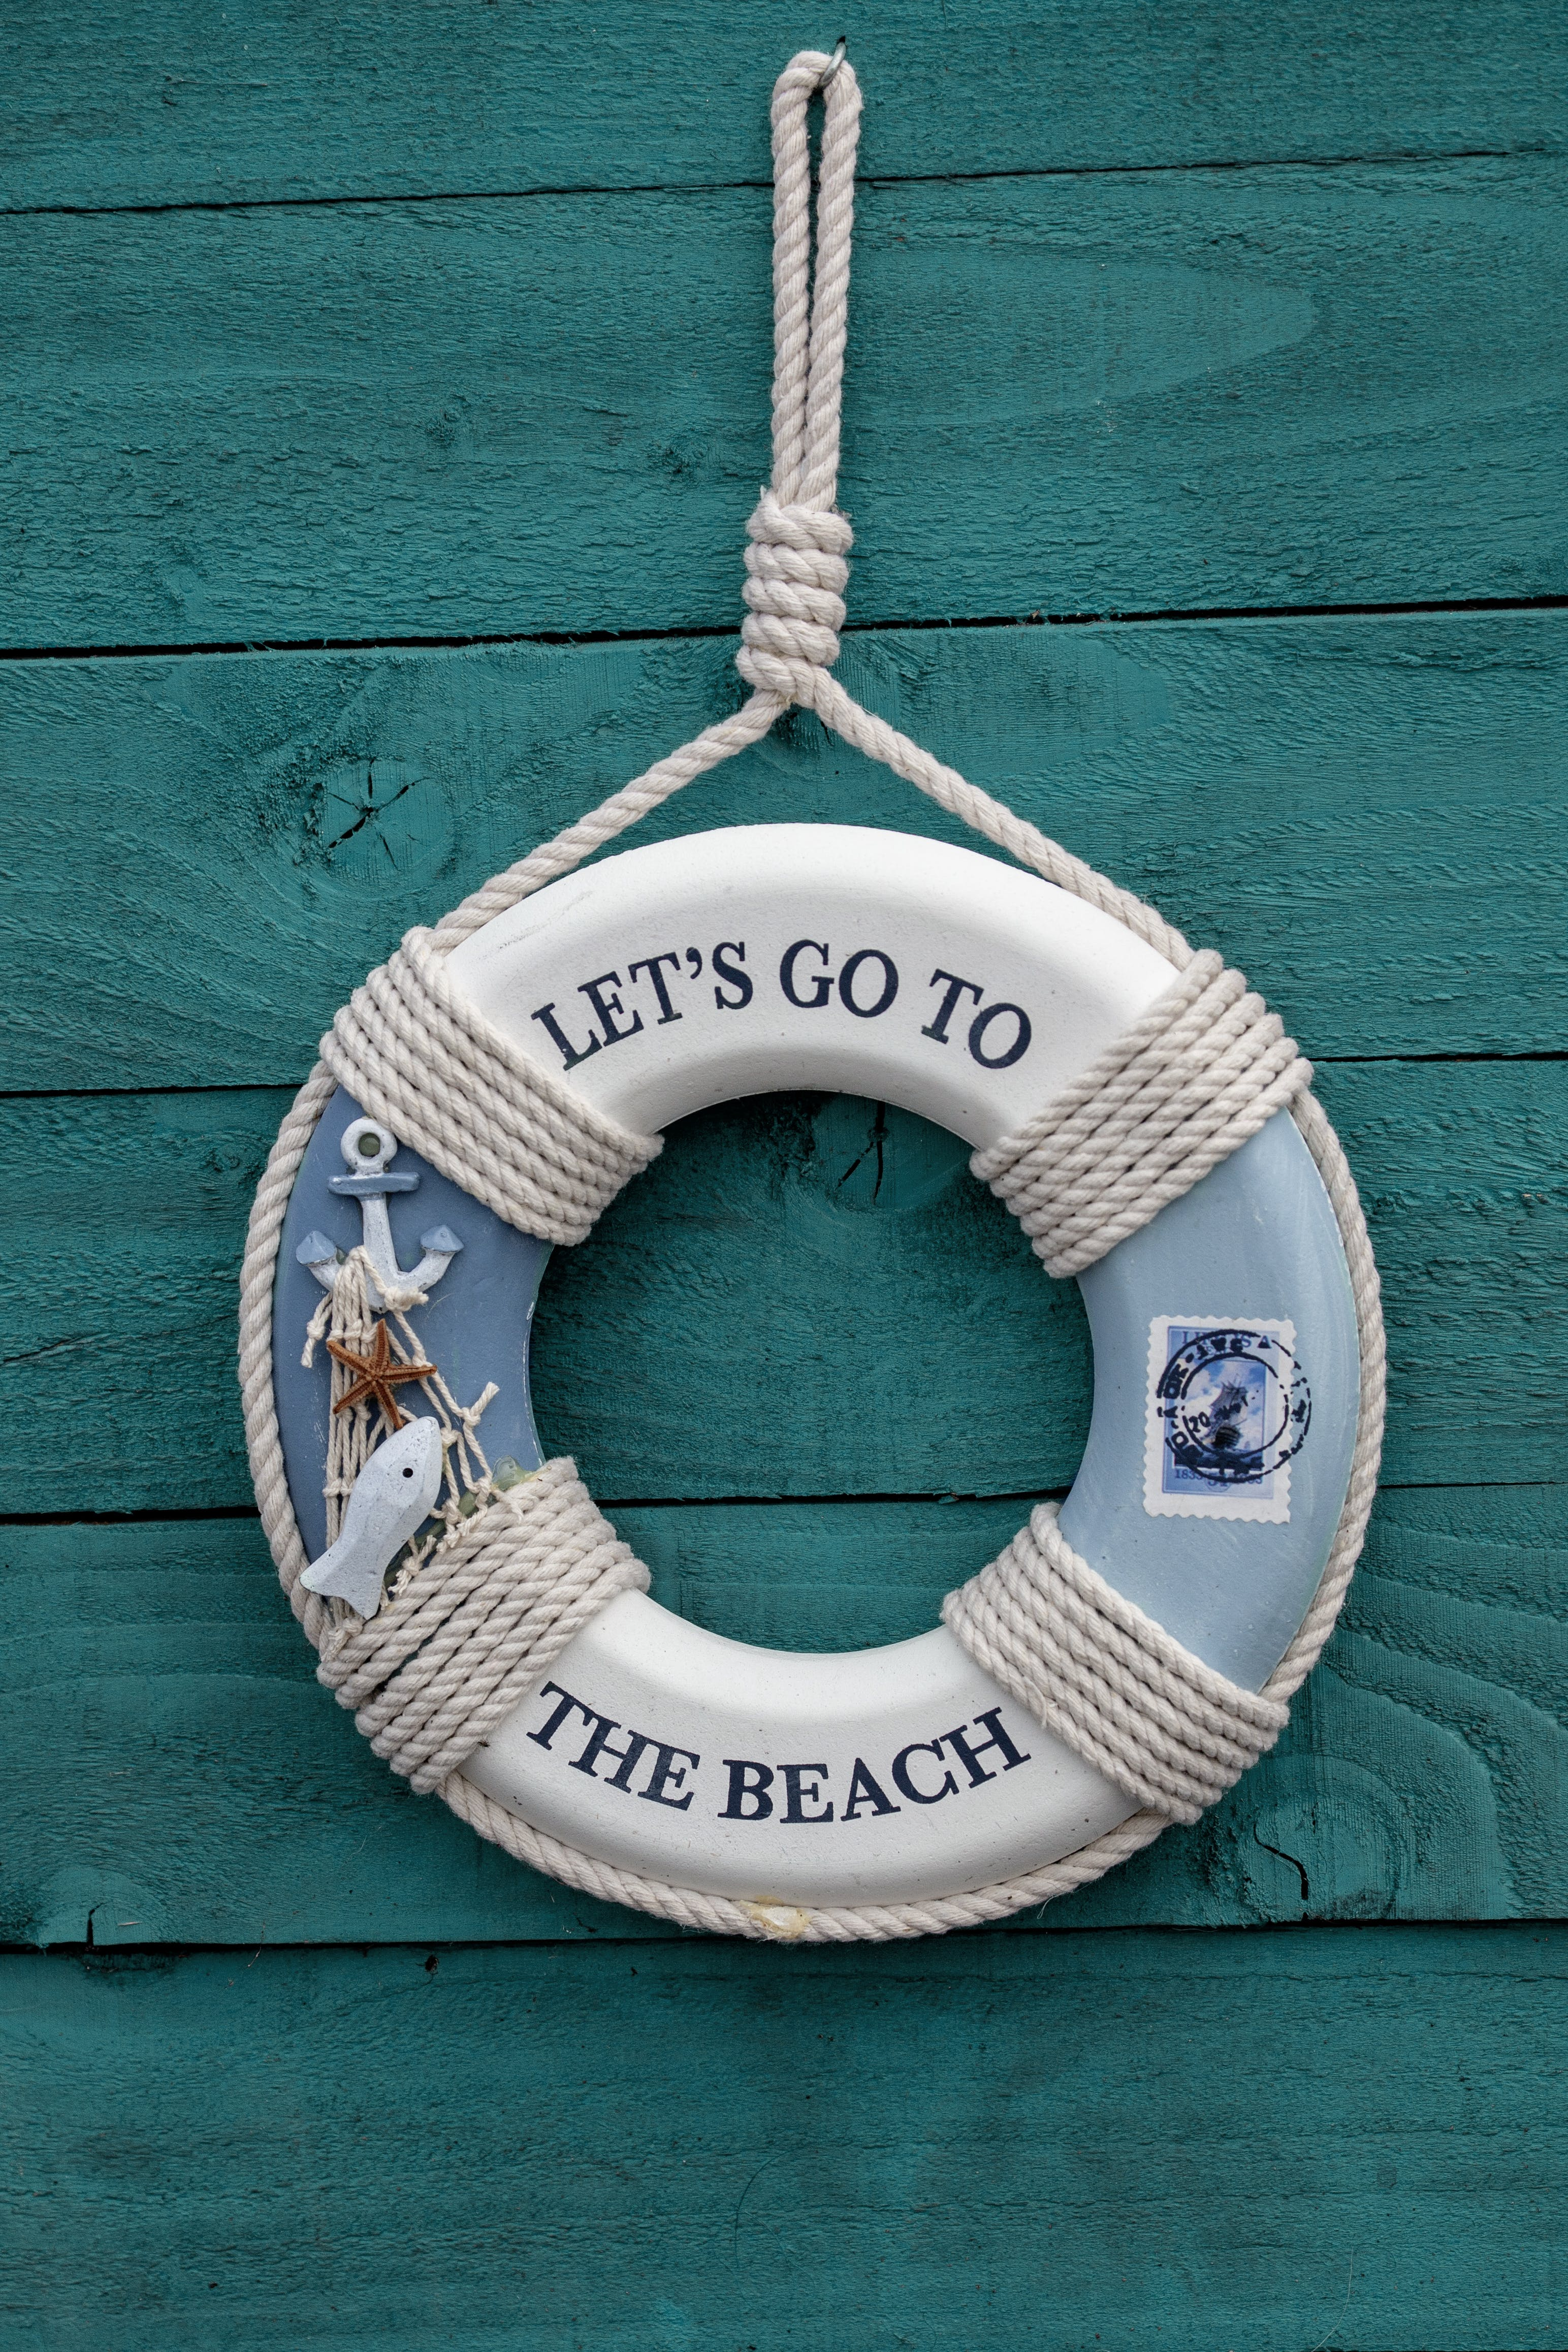 White and Blue Let's Go to the Beach Inflatable Ring Wreath Hanging Decor